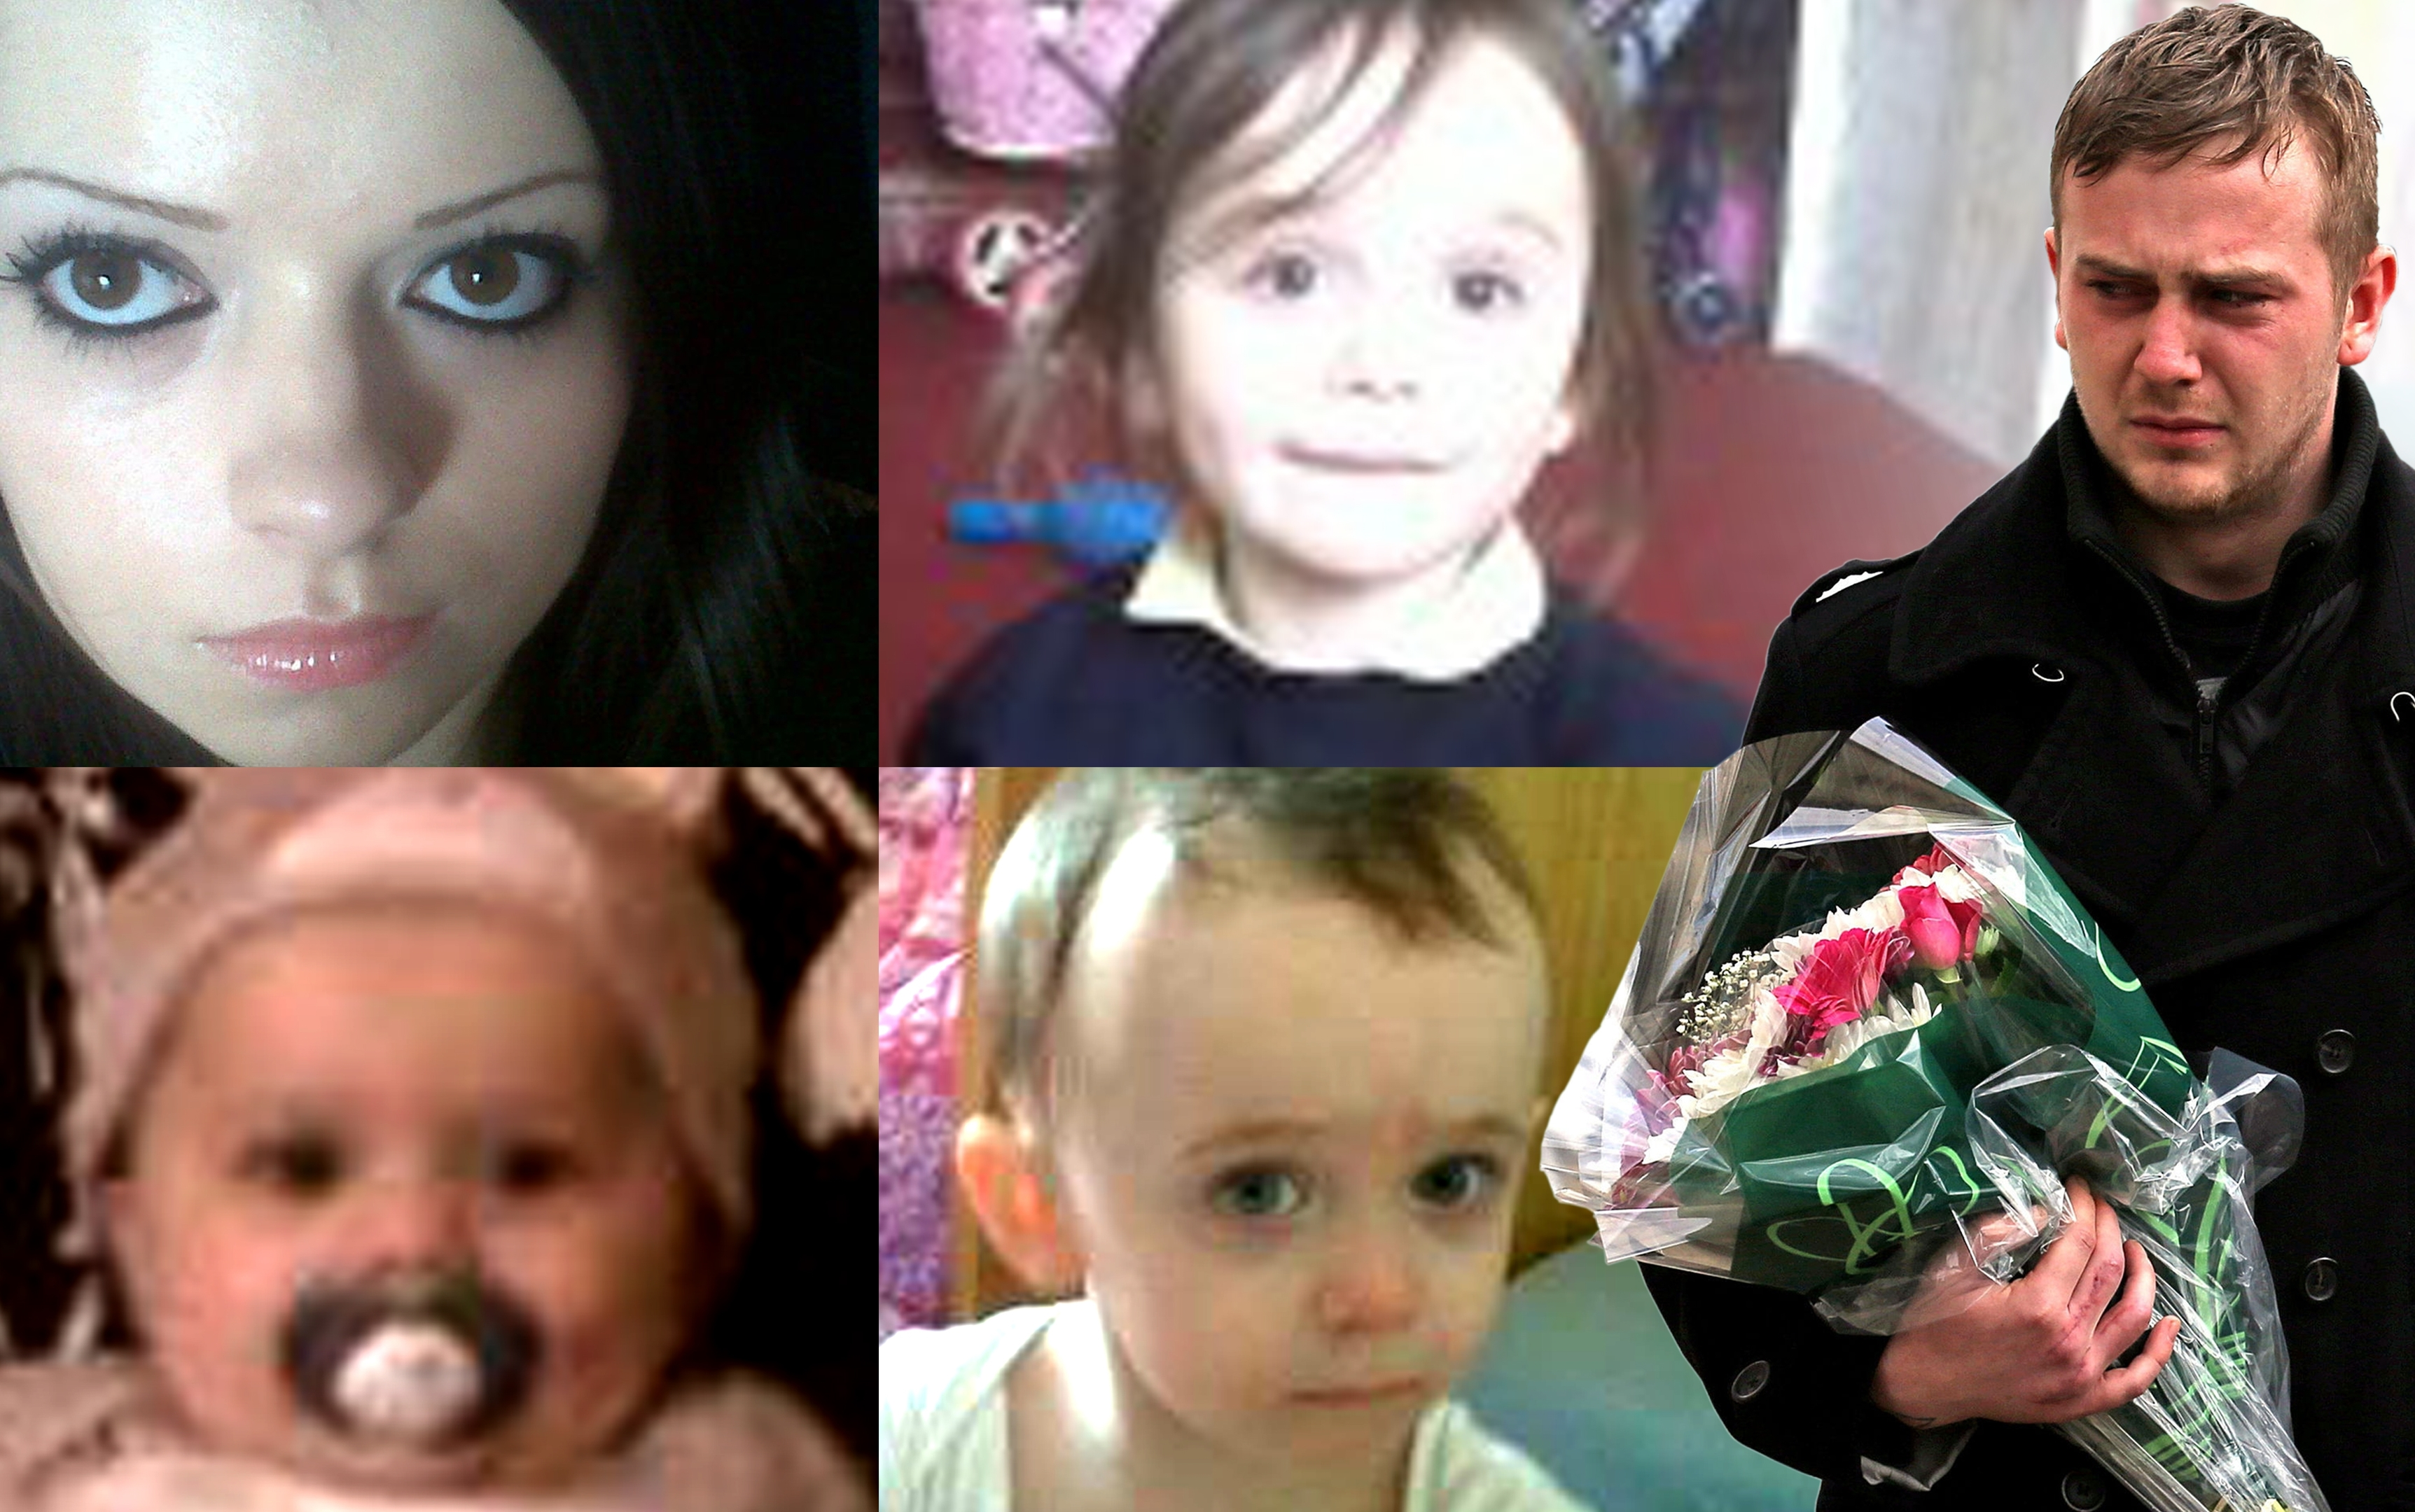 Fiona Anderson, children Levina, Kyden and Addy and the children's father Craig McLelland.